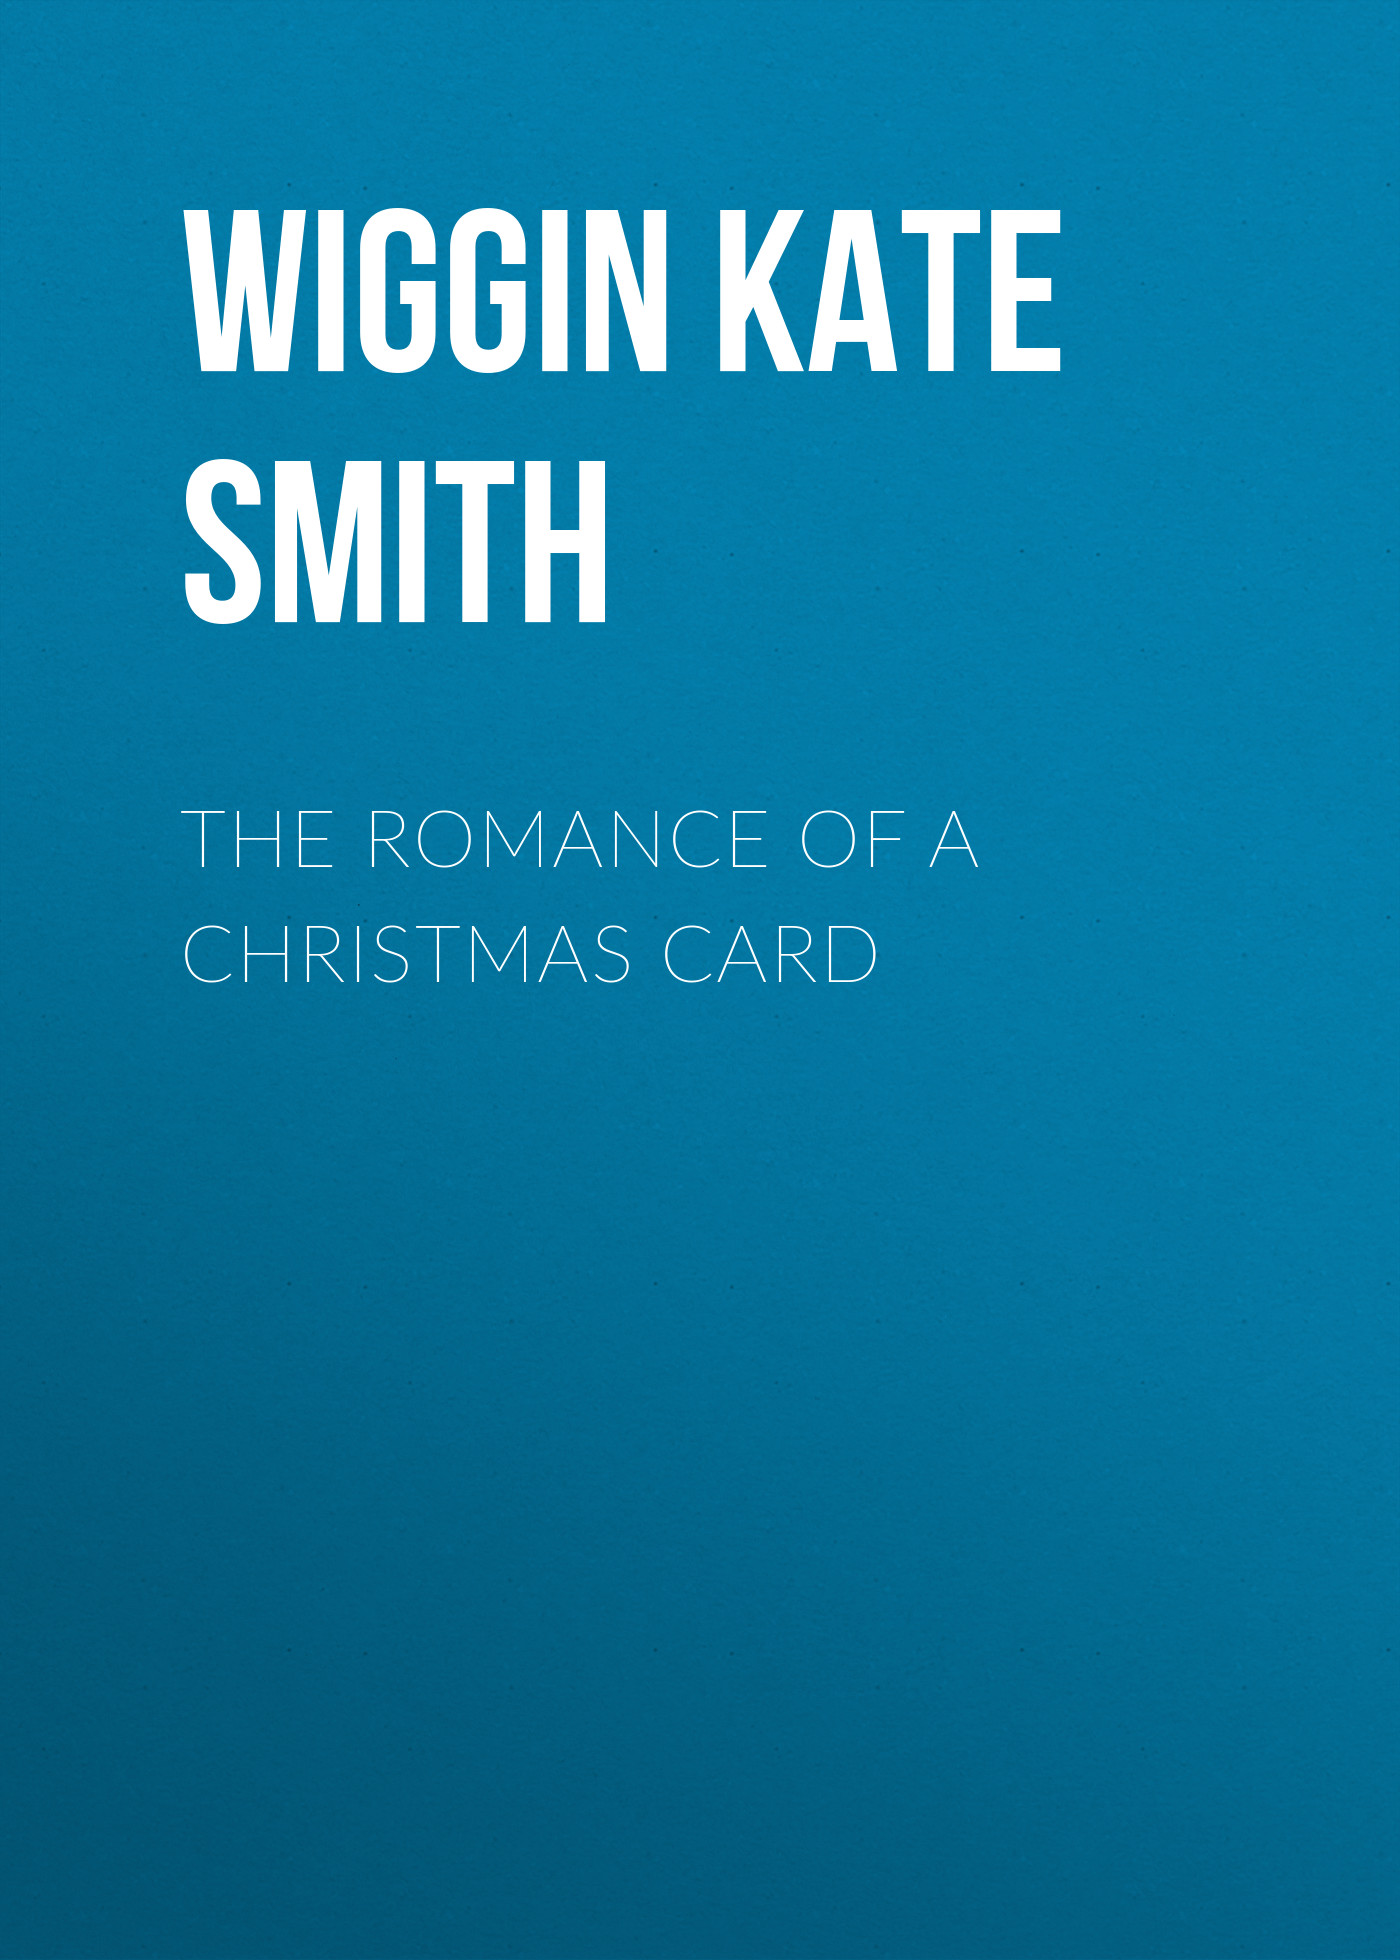 Wiggin Kate Douglas Smith The Romance of a Christmas Card kate douglas wiggin the bird s christmas carol by kate douglas wiggin fiction historical united states people